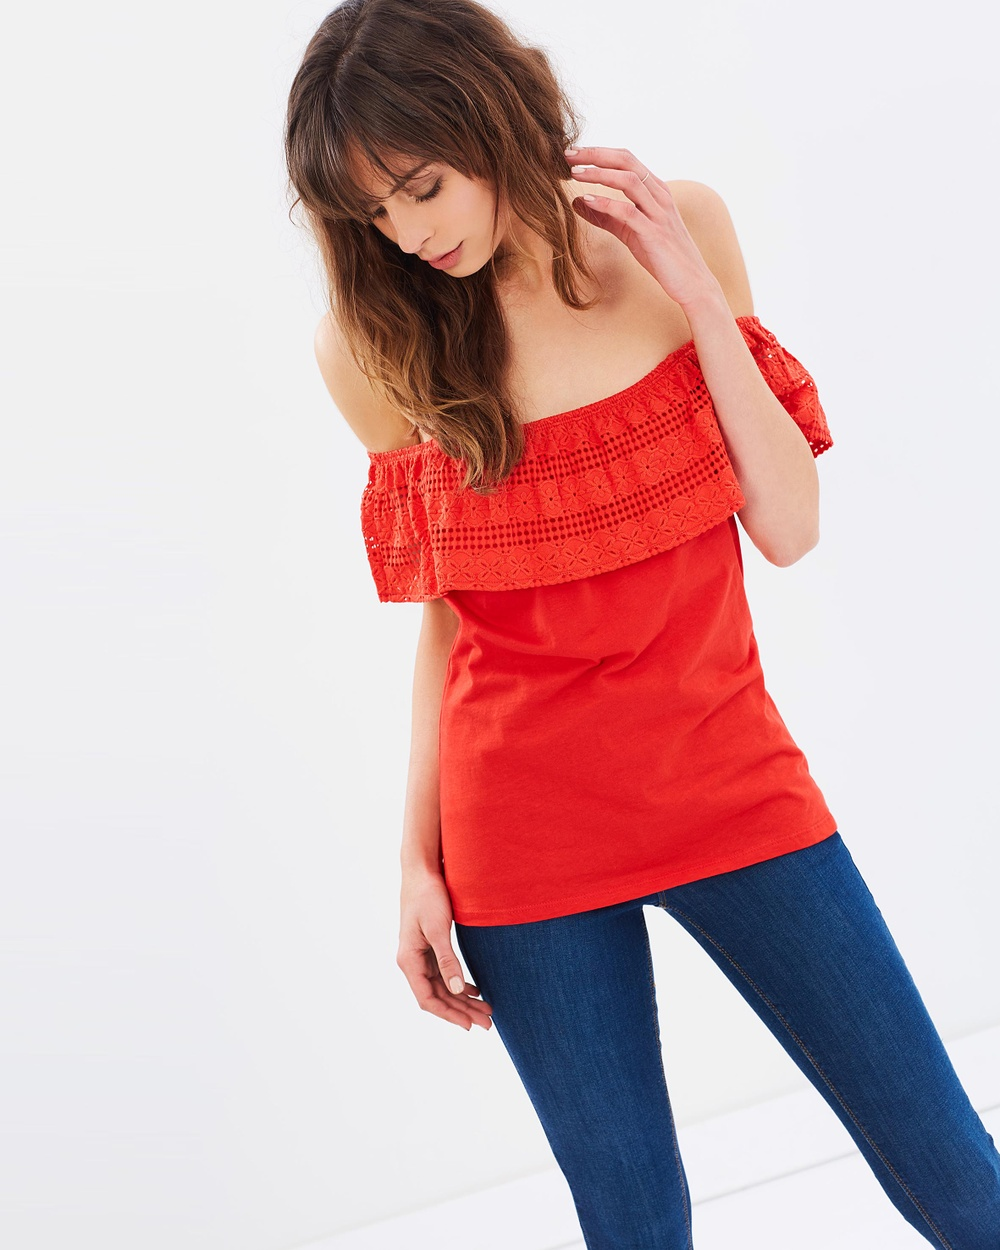 Dorothy Perkins Lace Ruffle Bardot Top Tops Red Lace Ruffle Bardot Top